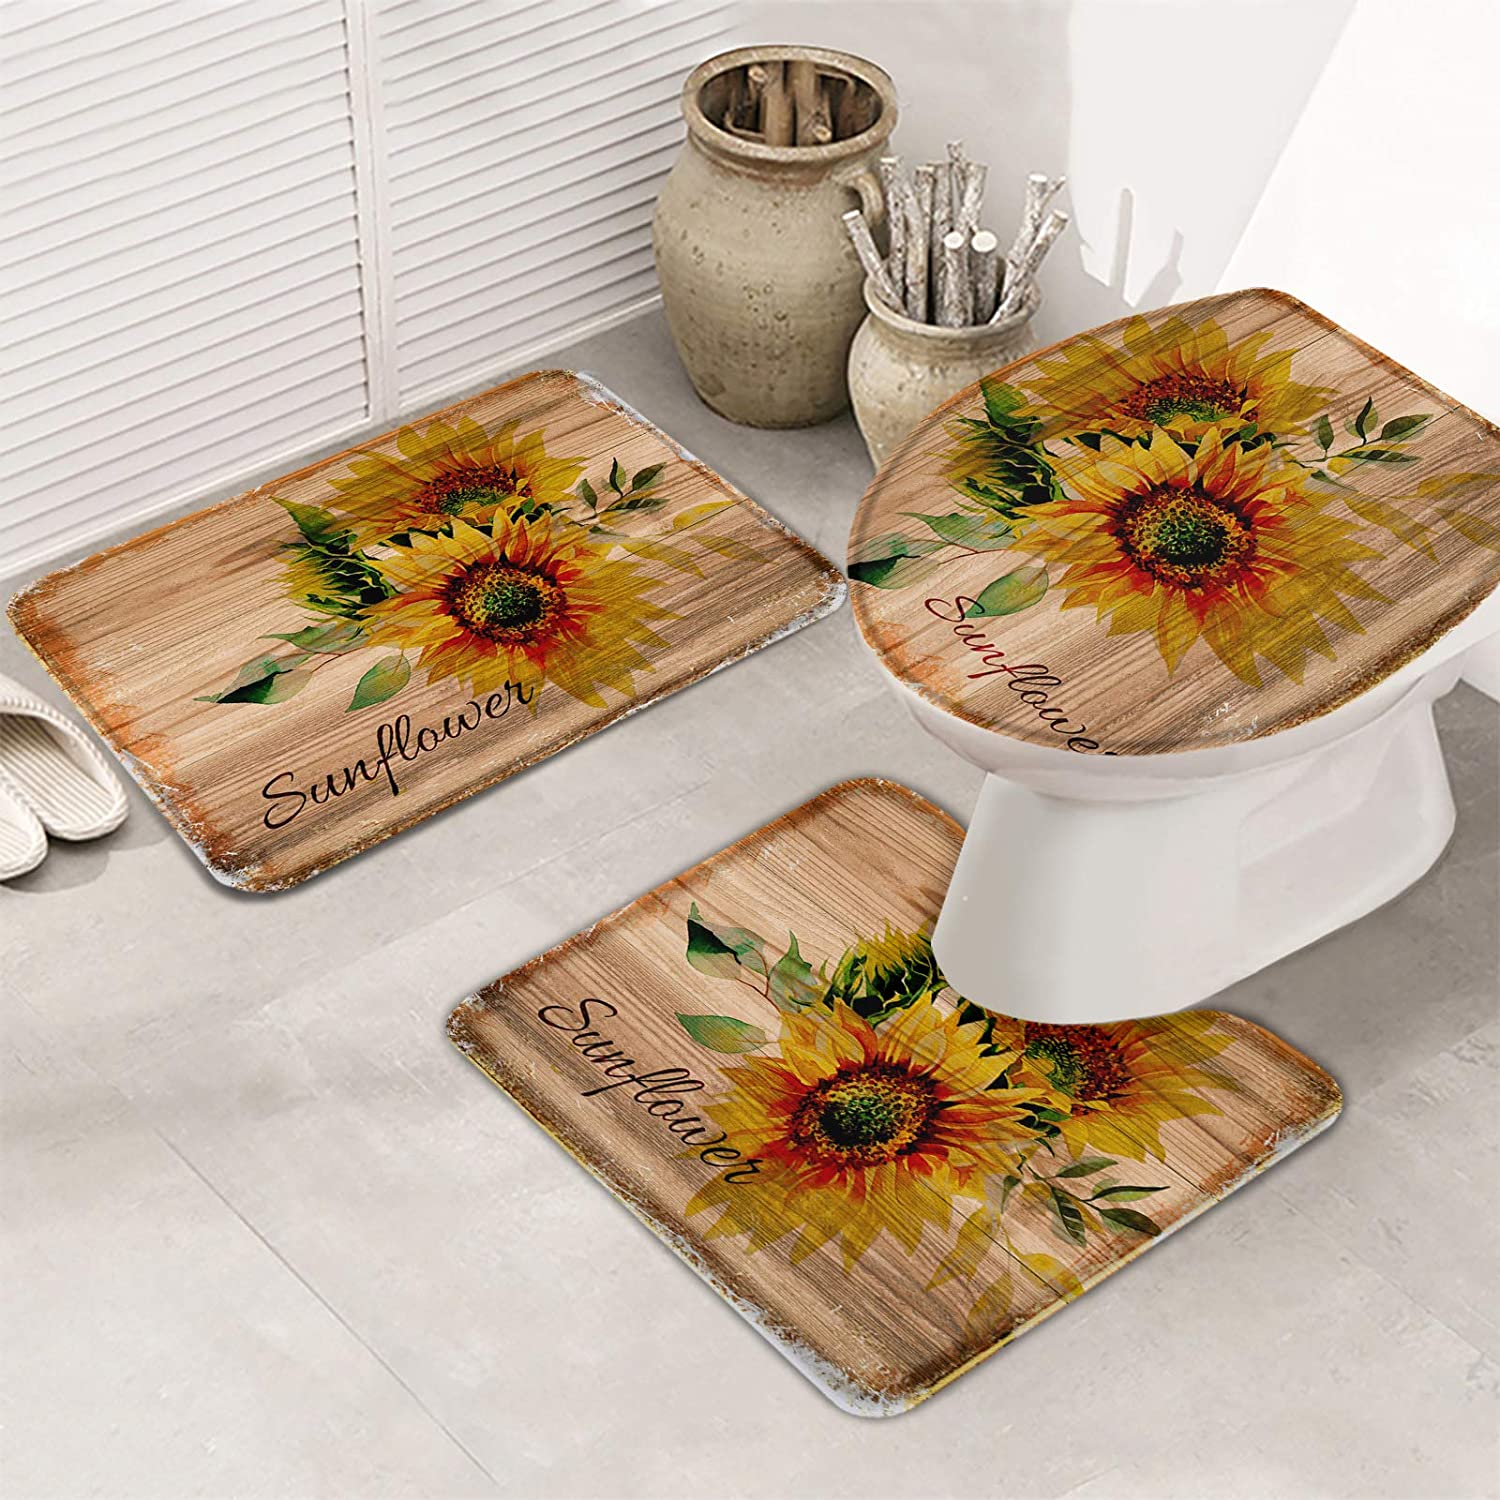 OneHoney Vintage Farm Bombing new work Florals 3 Pieces Bath and Mats Set Max 57% OFF N Rugs